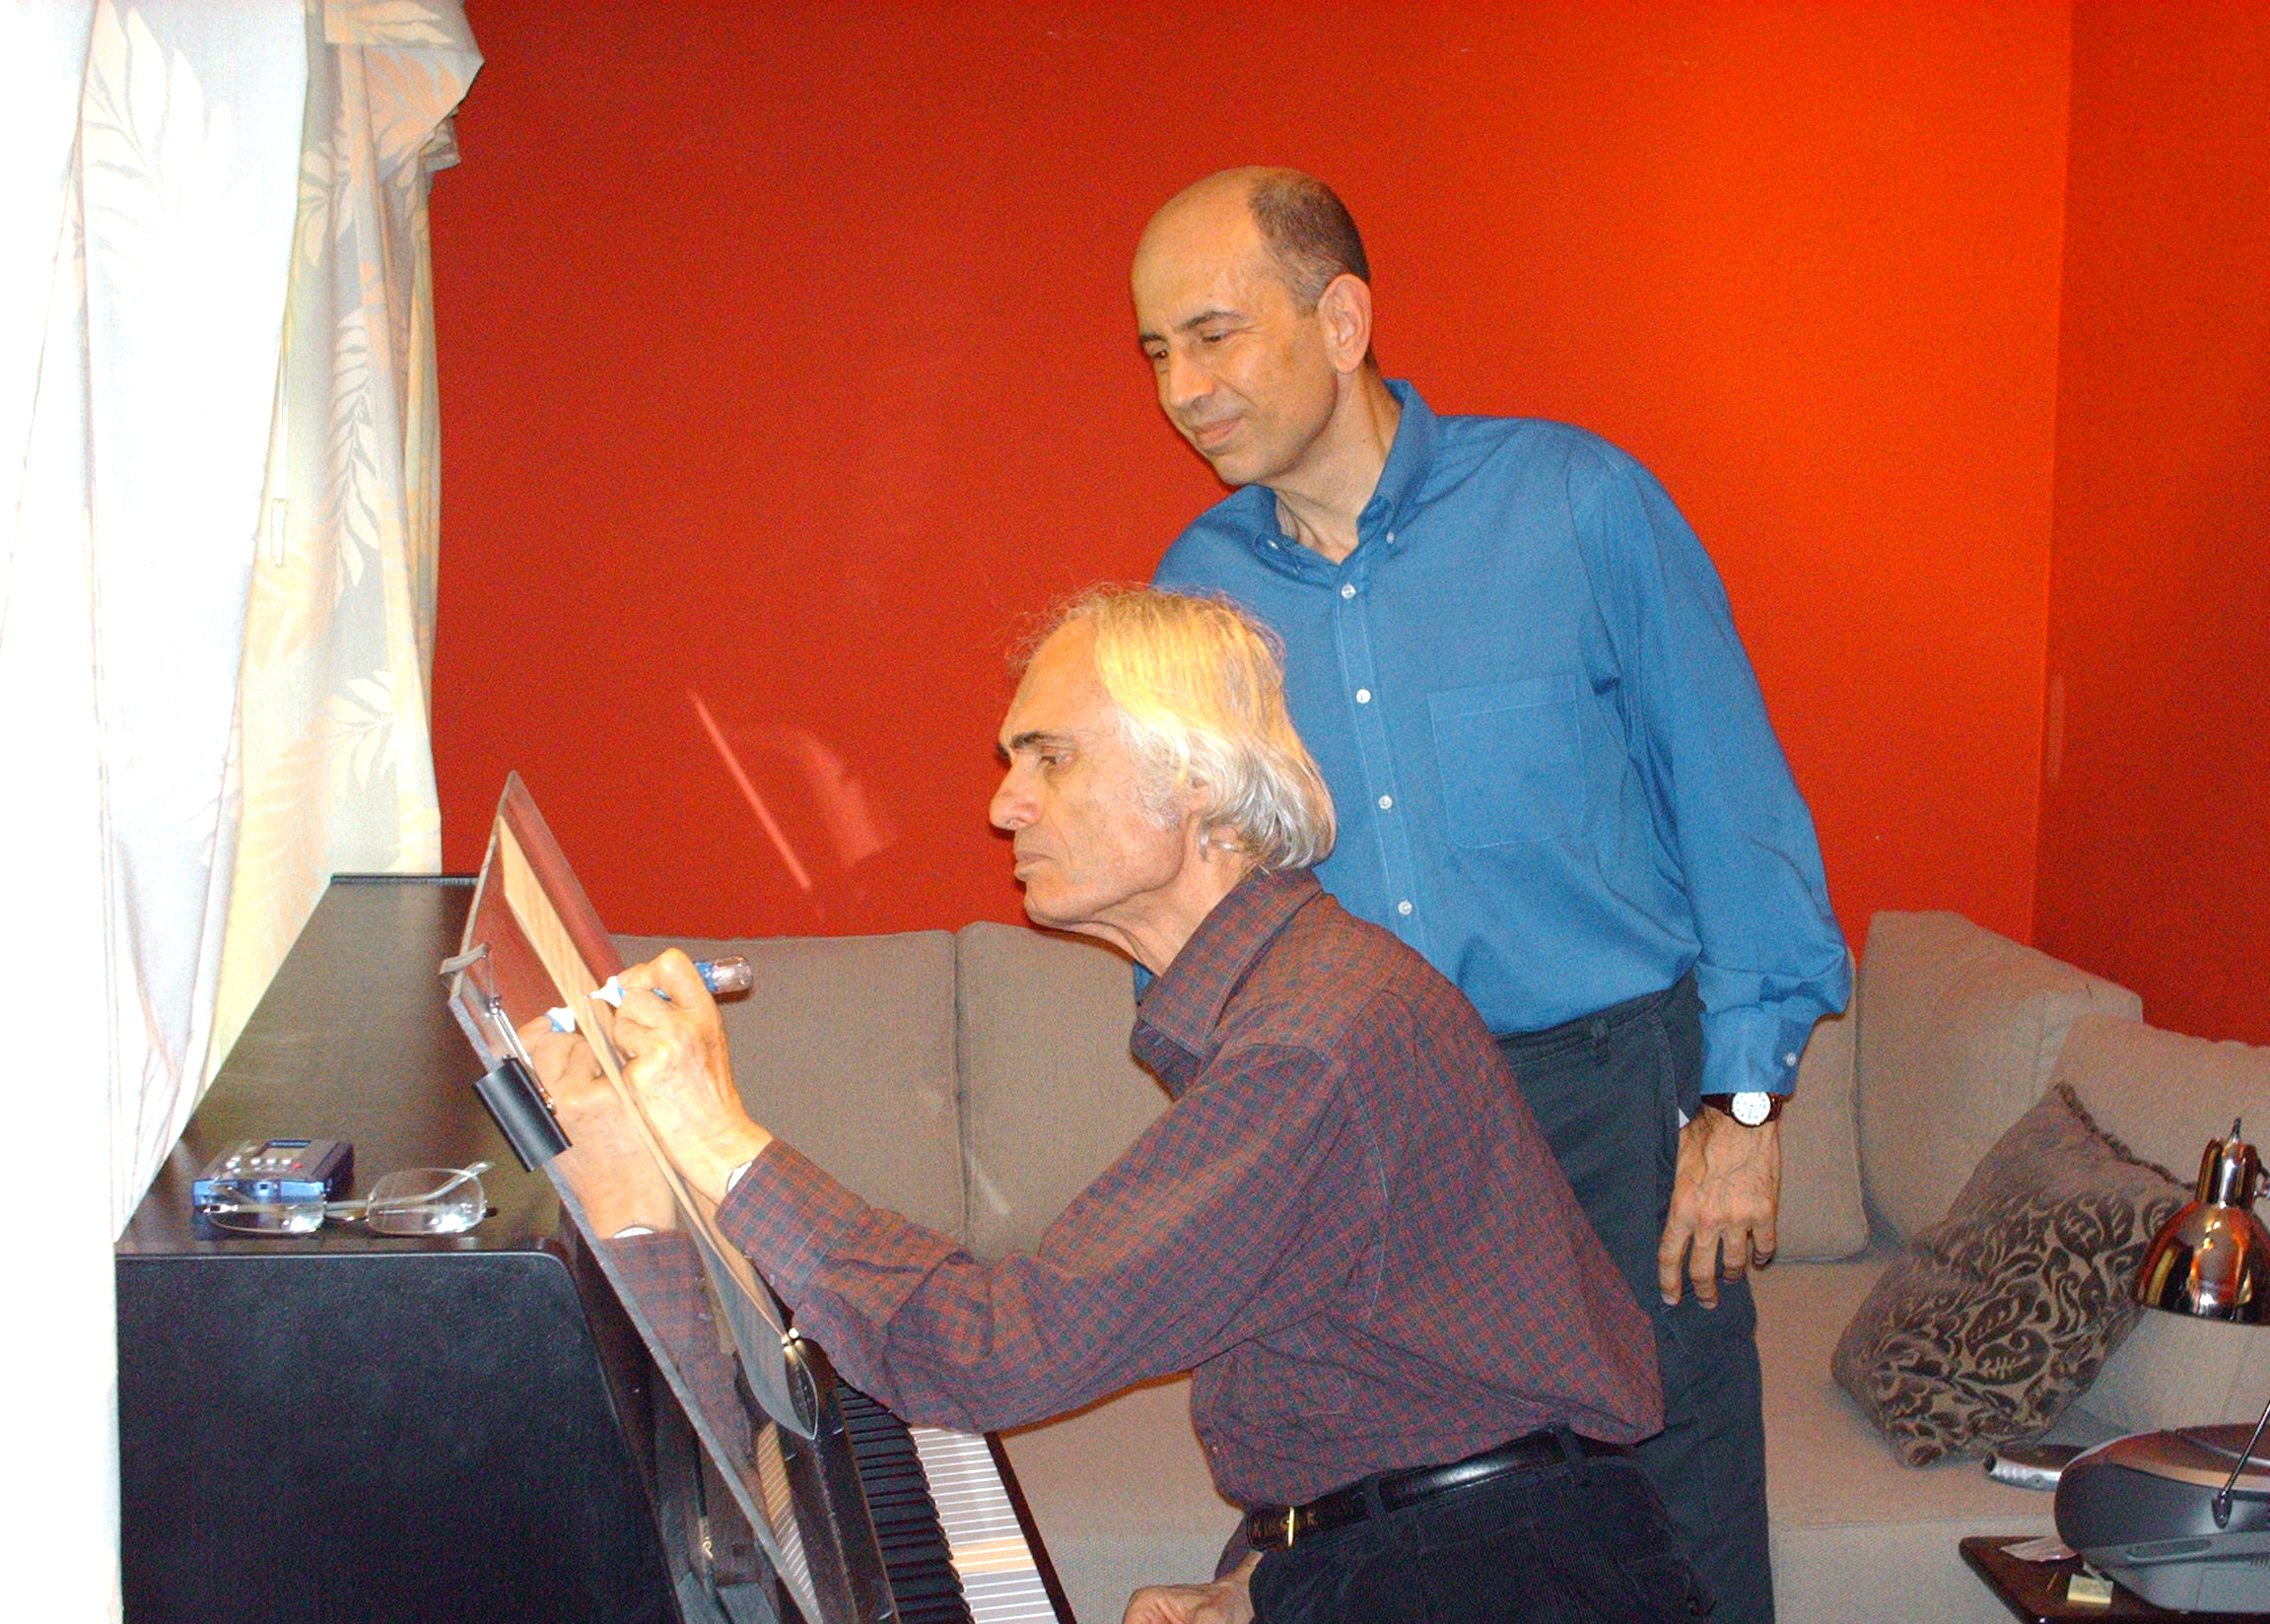 With composer Tigran Mansurian